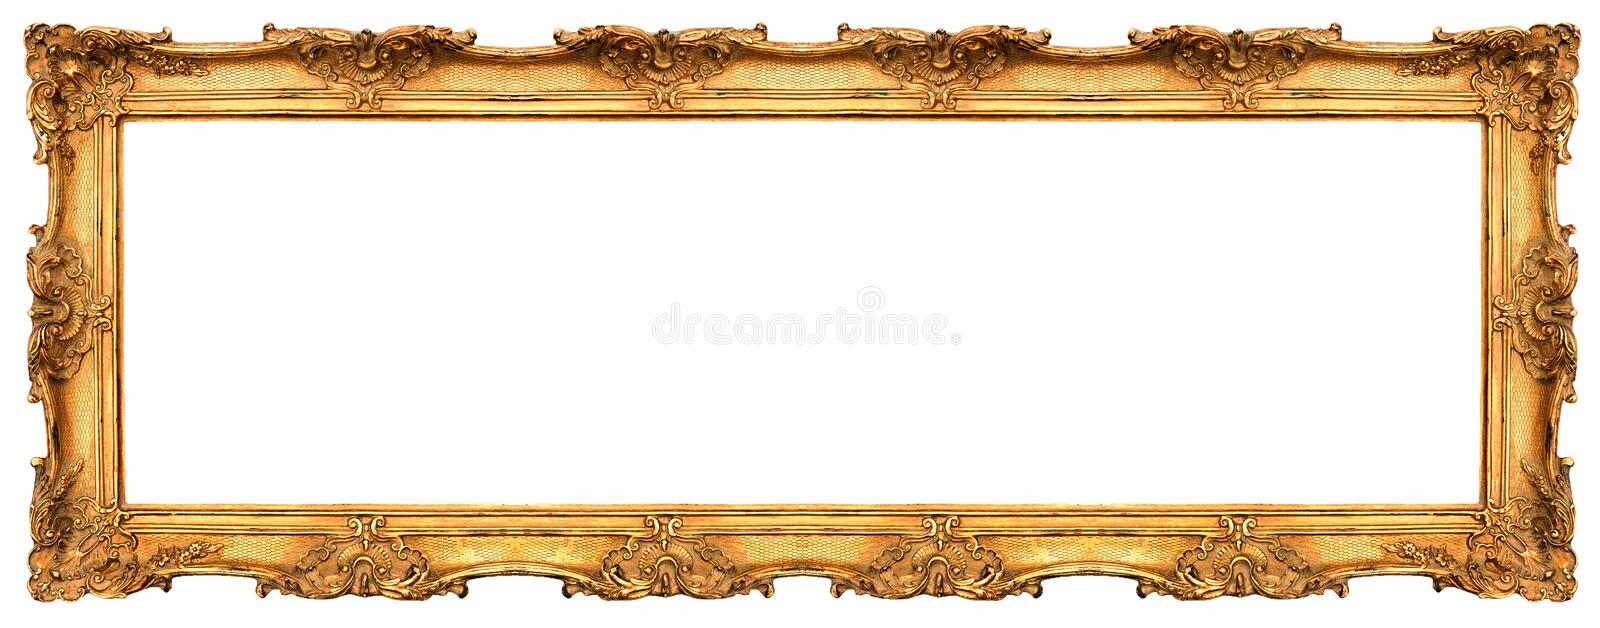 Long old golden frame isolated on white royalty free stock photos